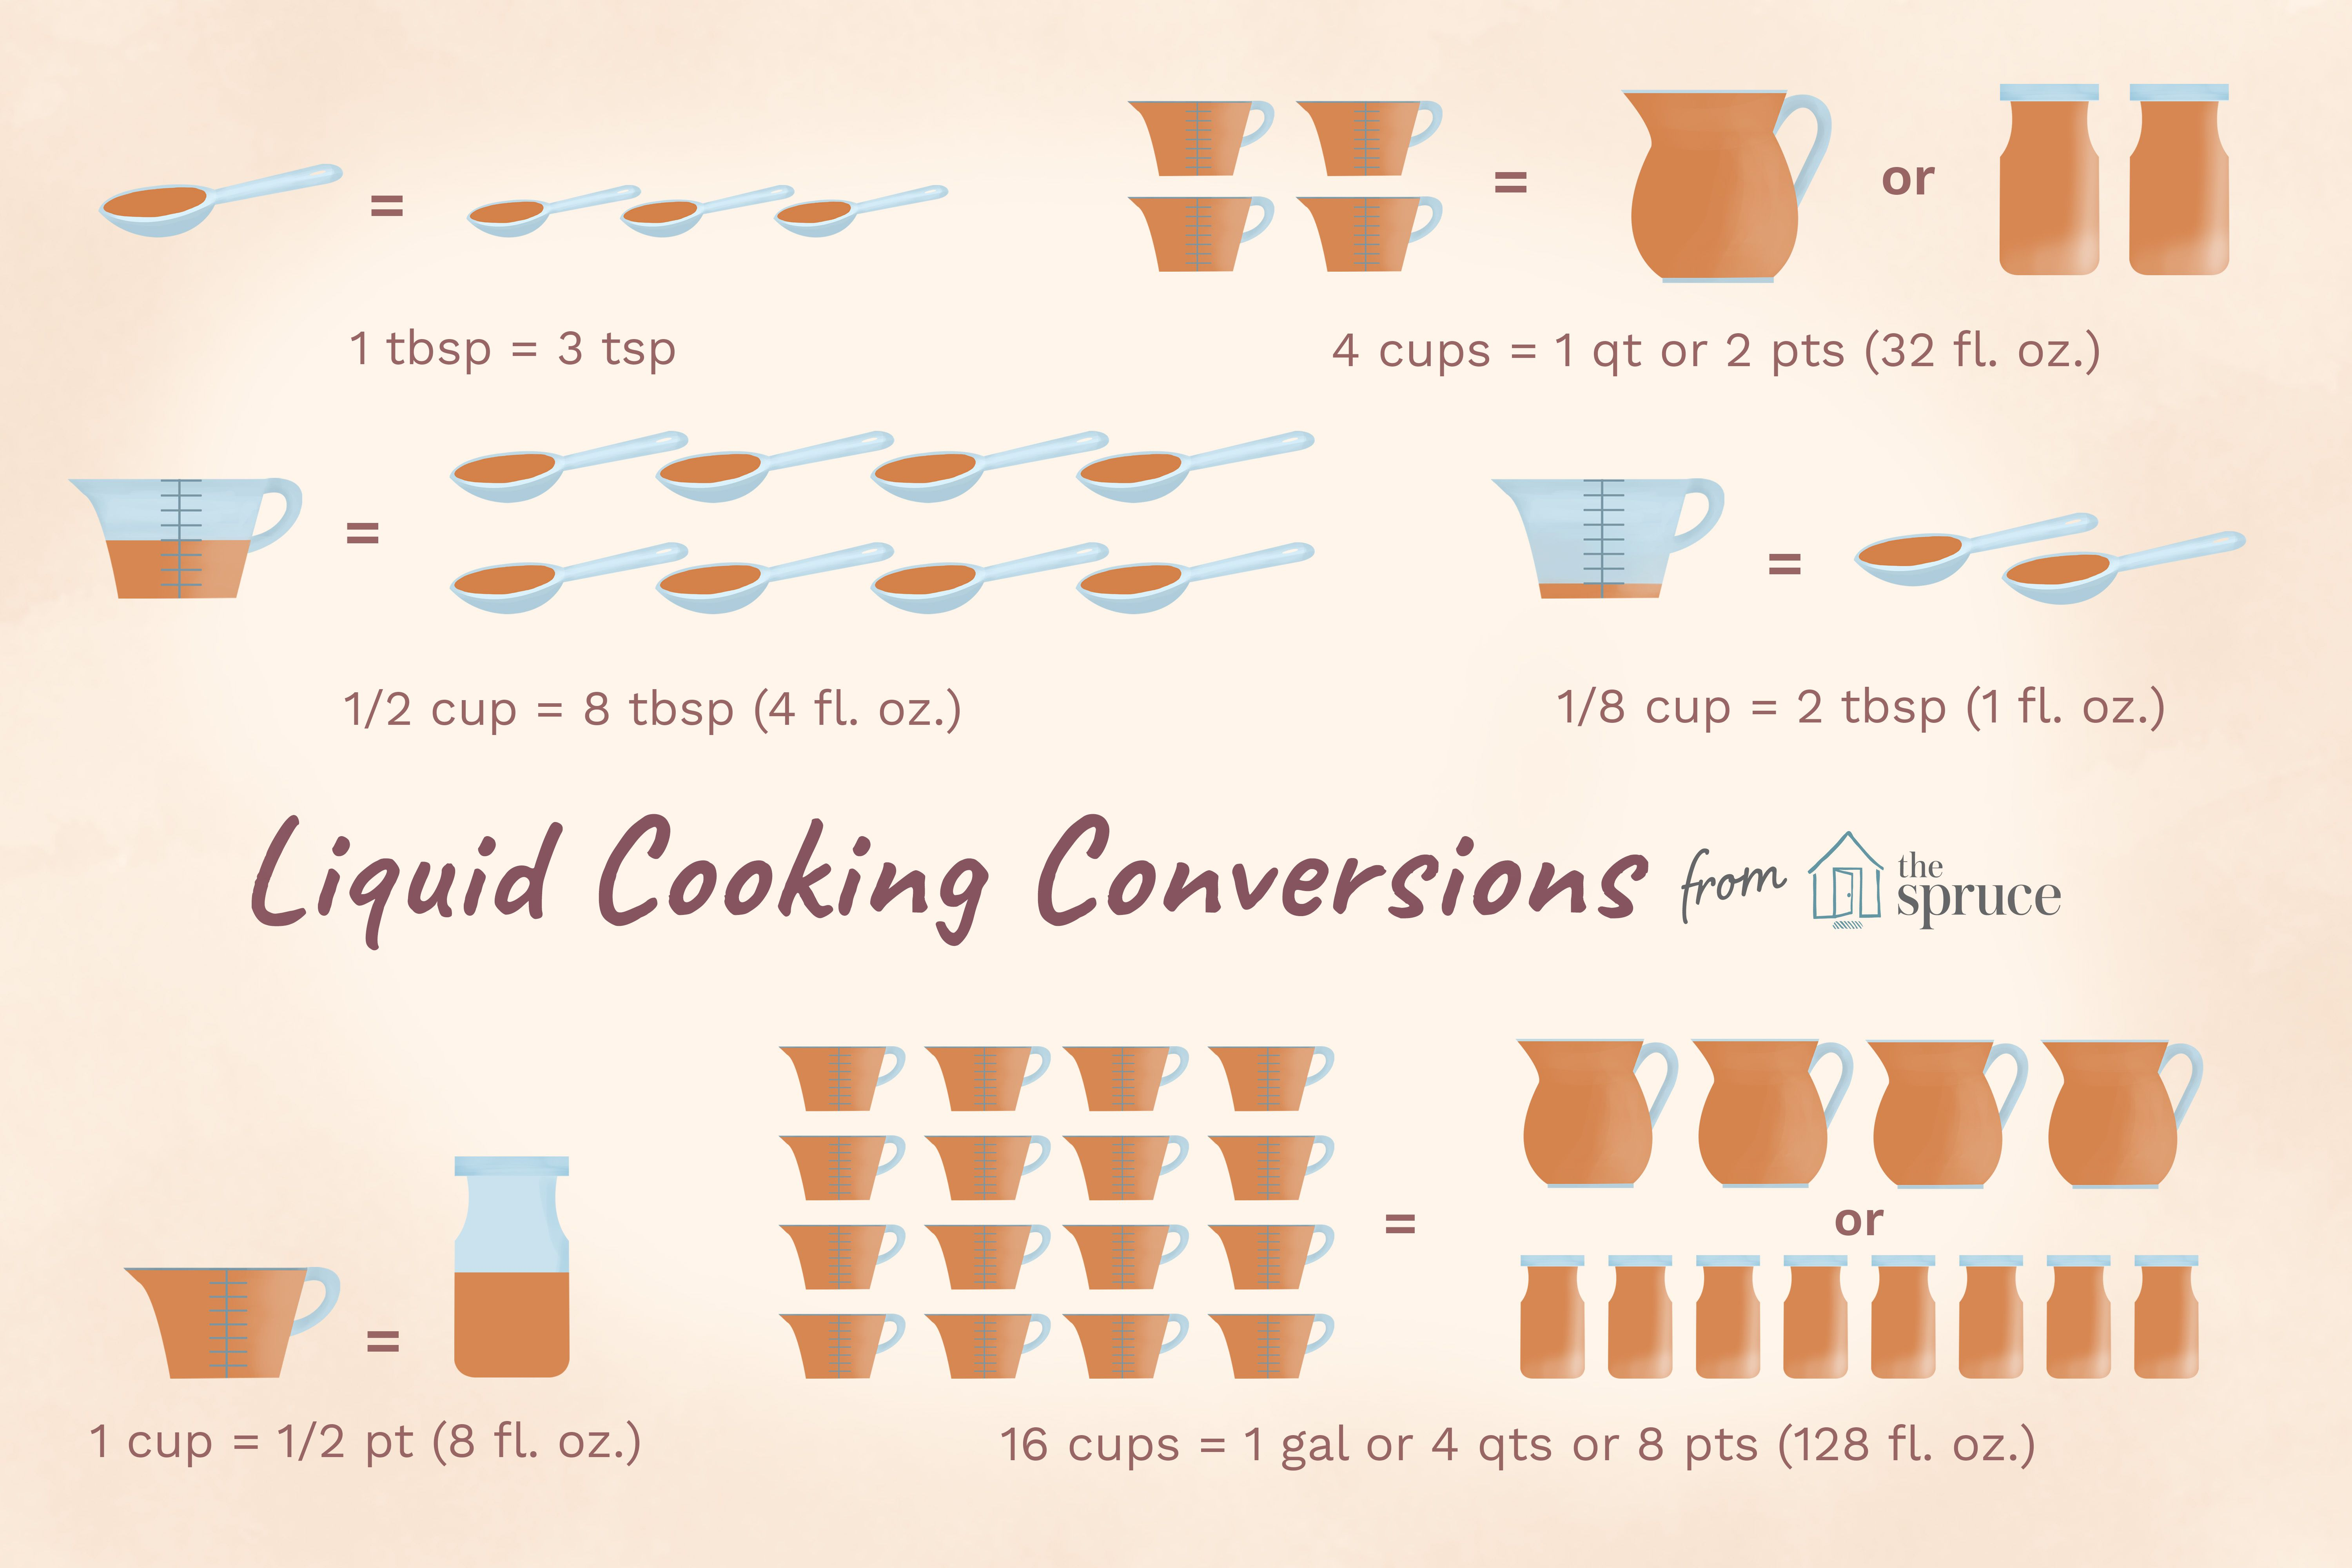 Australian Cup Measurement Tablespoon To Cup Conversion Australia Bruin Blog